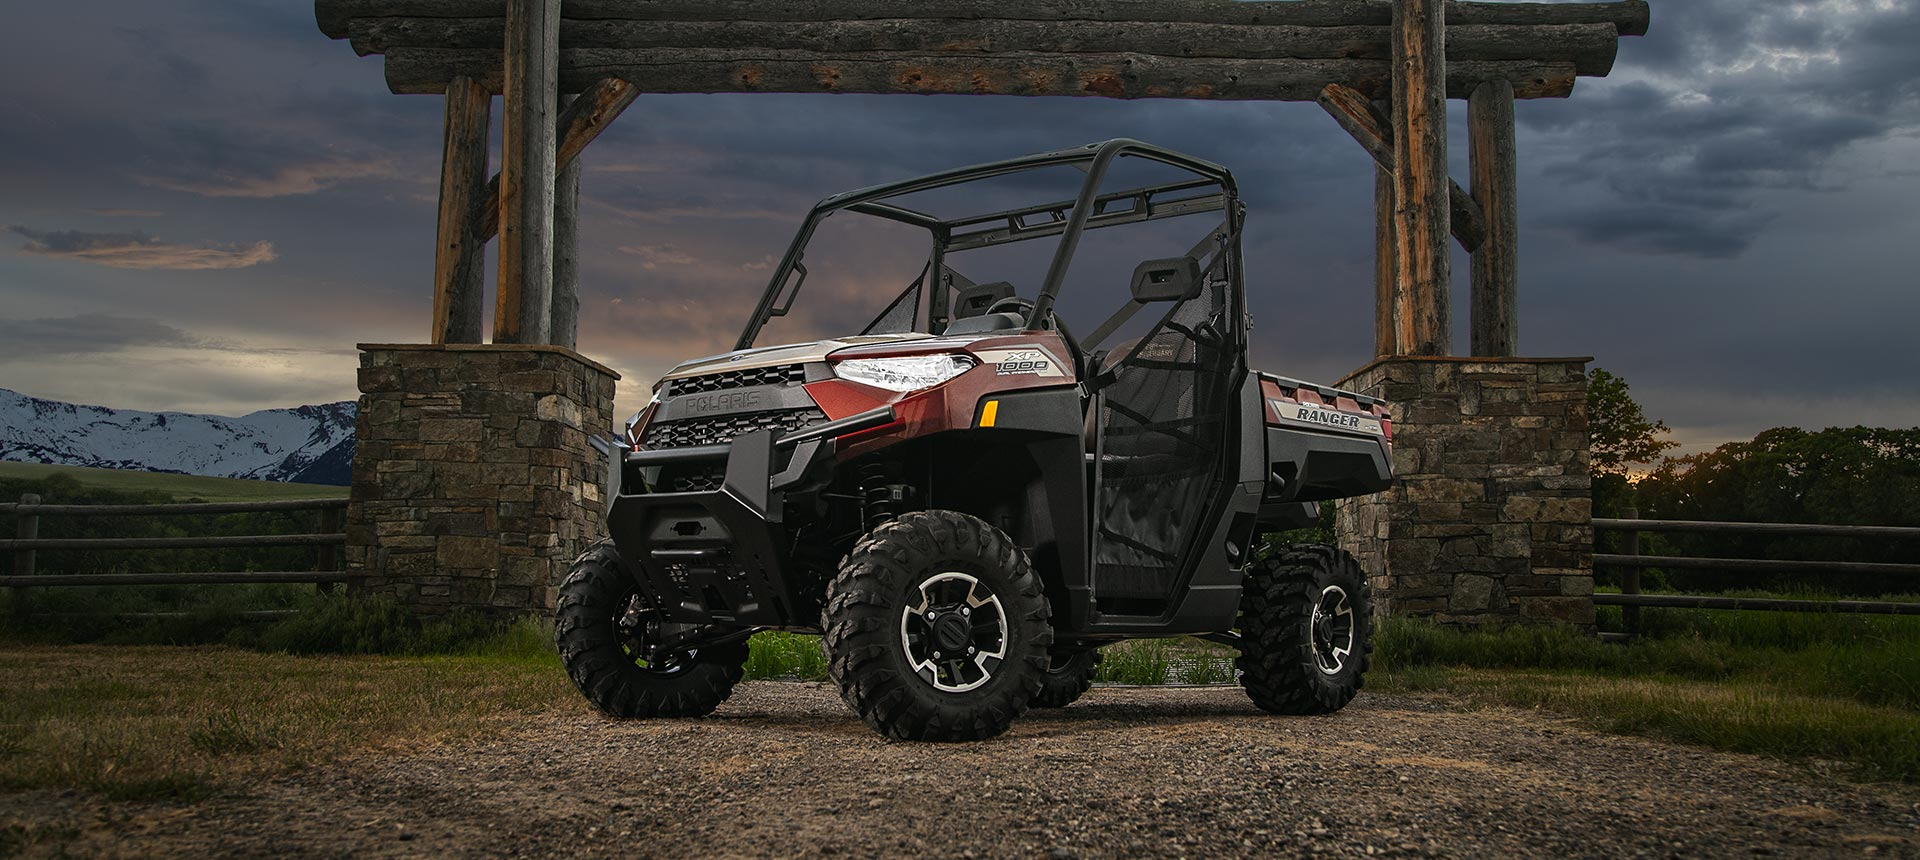 2019 Polaris Ranger XP 1000 EPS in Eureka, California